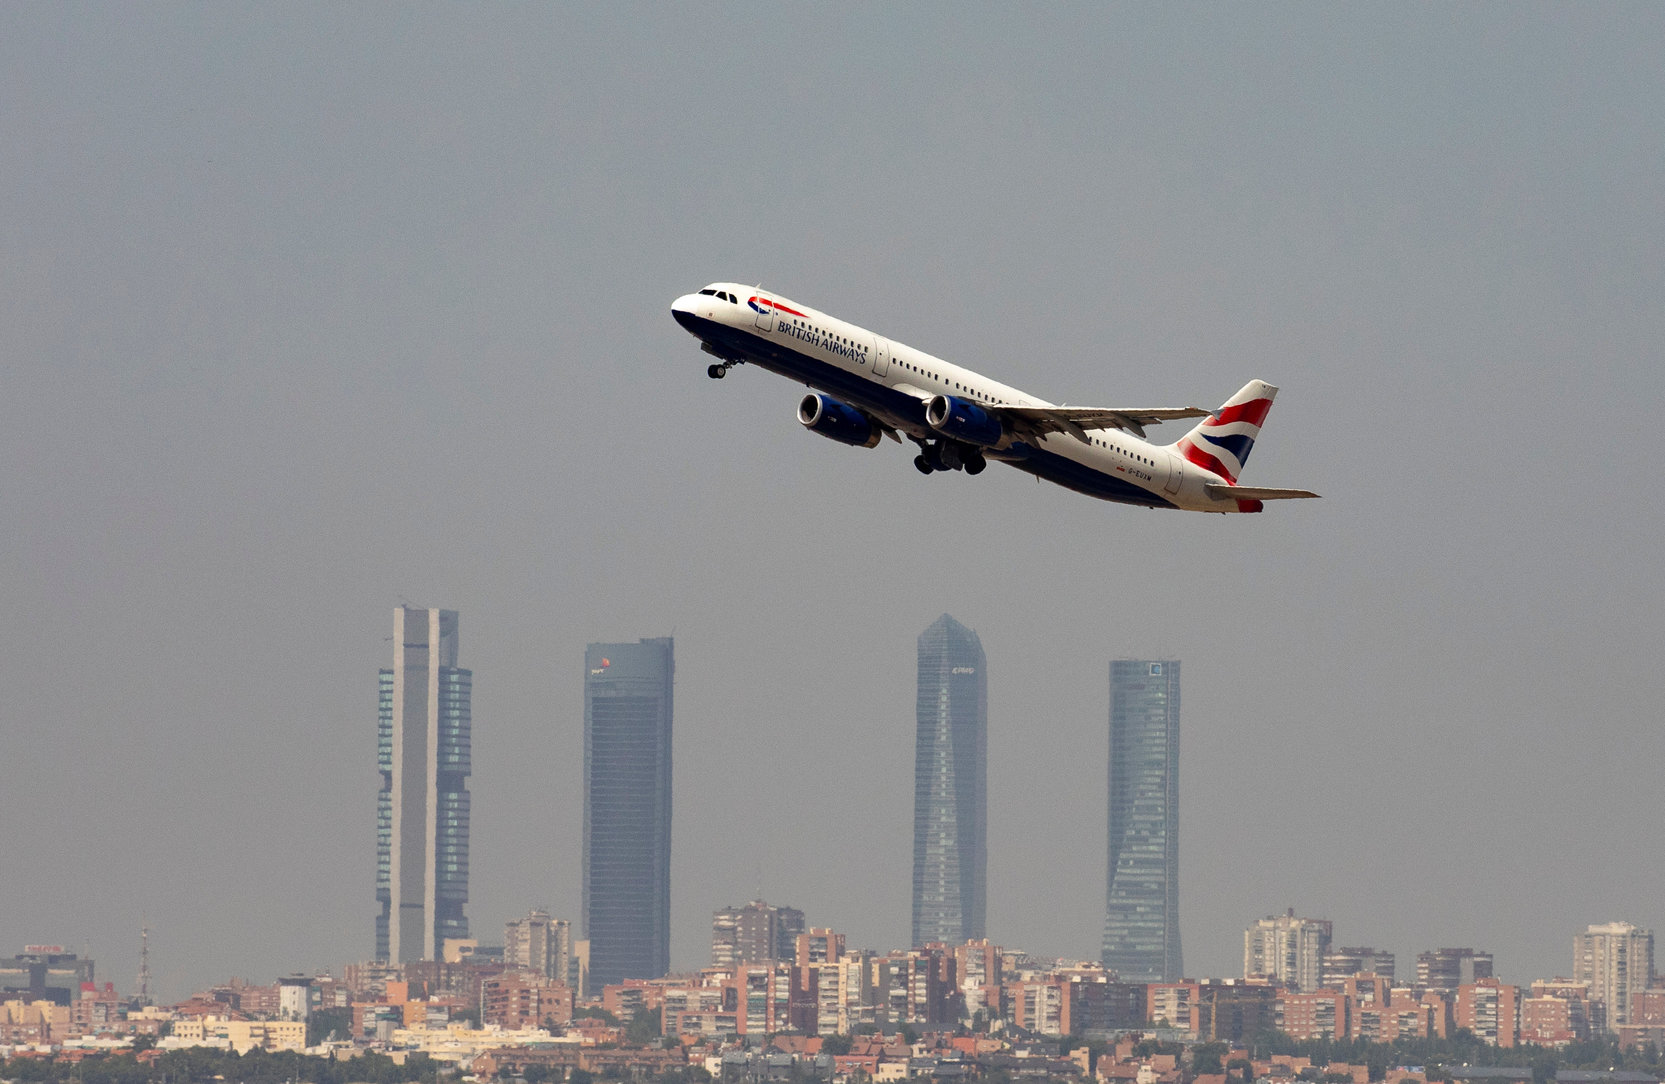 A British Airways Airbus A321-200 airplane takes off from the Adolfo Suarez Madrid-Barajas airport as seen from Paracuellos del Jarama, outside Madrid, Spain, August 8, 2018.  REUTERS/Paul Hanna - RC12152EBD60